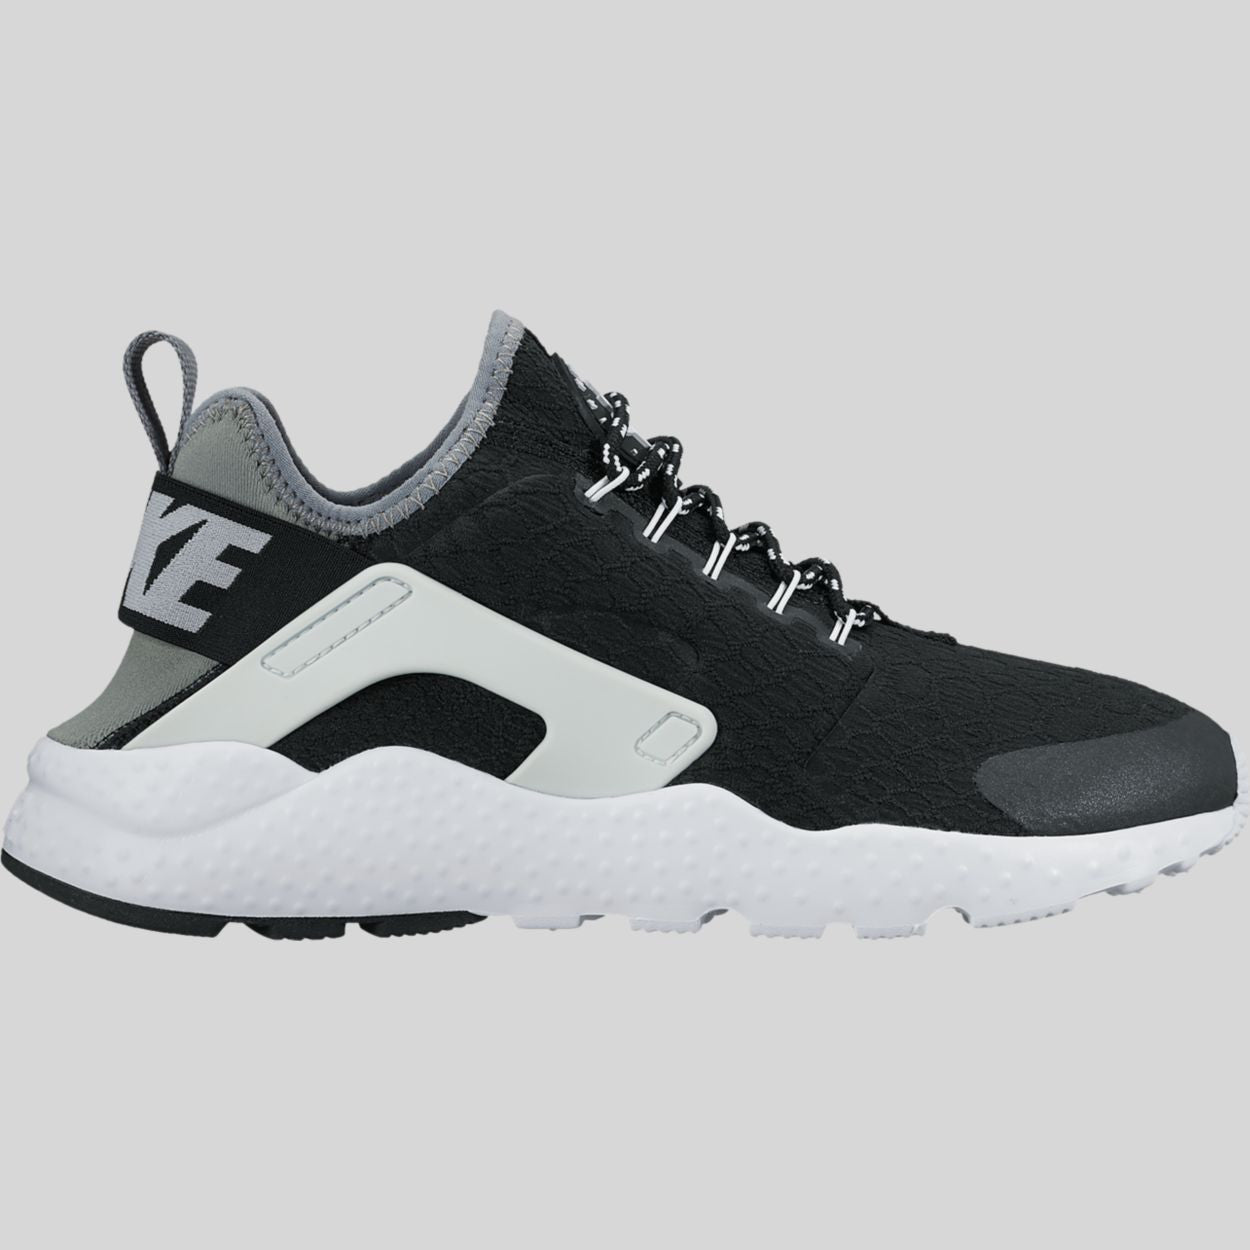 pretty nice 92611 c2d87 Nike Wmns Air Huarache Run Ultra SE Black Cool Grey Pure Platinum  (859516-002